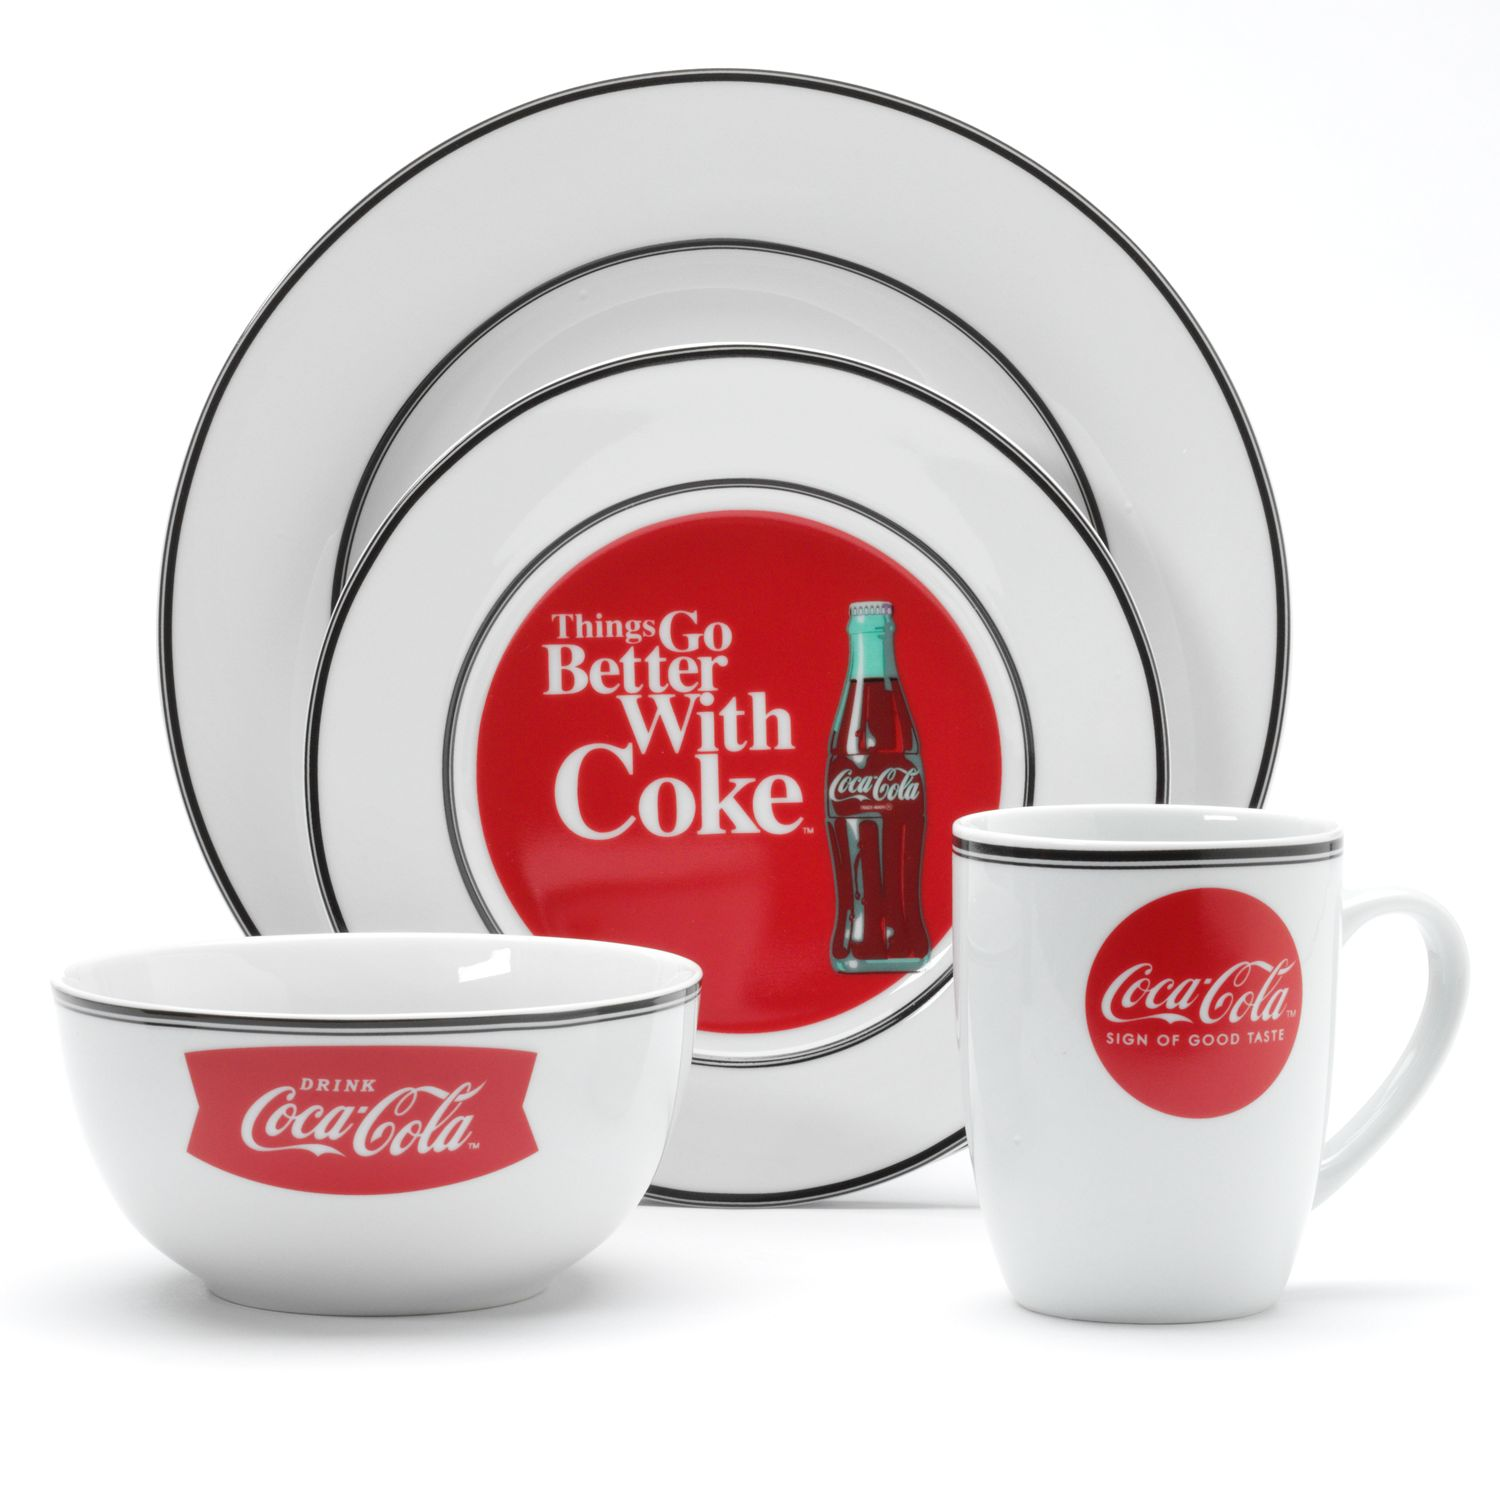 Your next meal is sure to be hopping with this fun Coca-Cola dinnerware. Click To More information.  sc 1 st  MmryFmckllwTrvlllwwthrtblB Blckvltllw - Blogger & MmryFmckllwTrvlllwwthrtblB Blckvltllw: July 2013